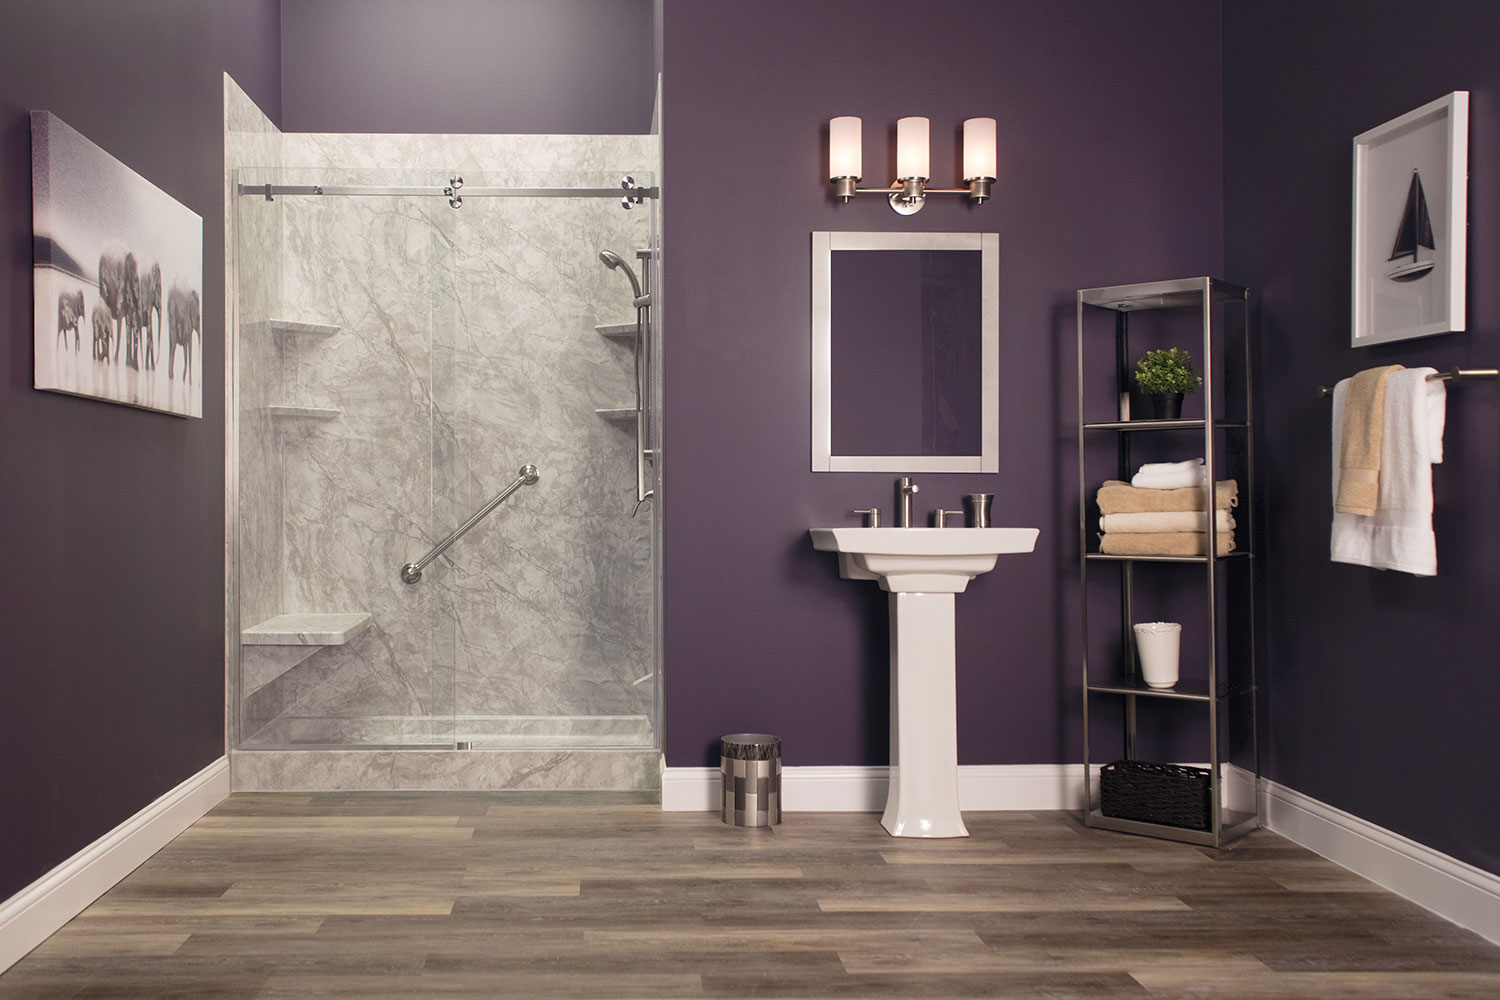 Iowa Walk in Shower Remodel 2 | Home Town Restyling